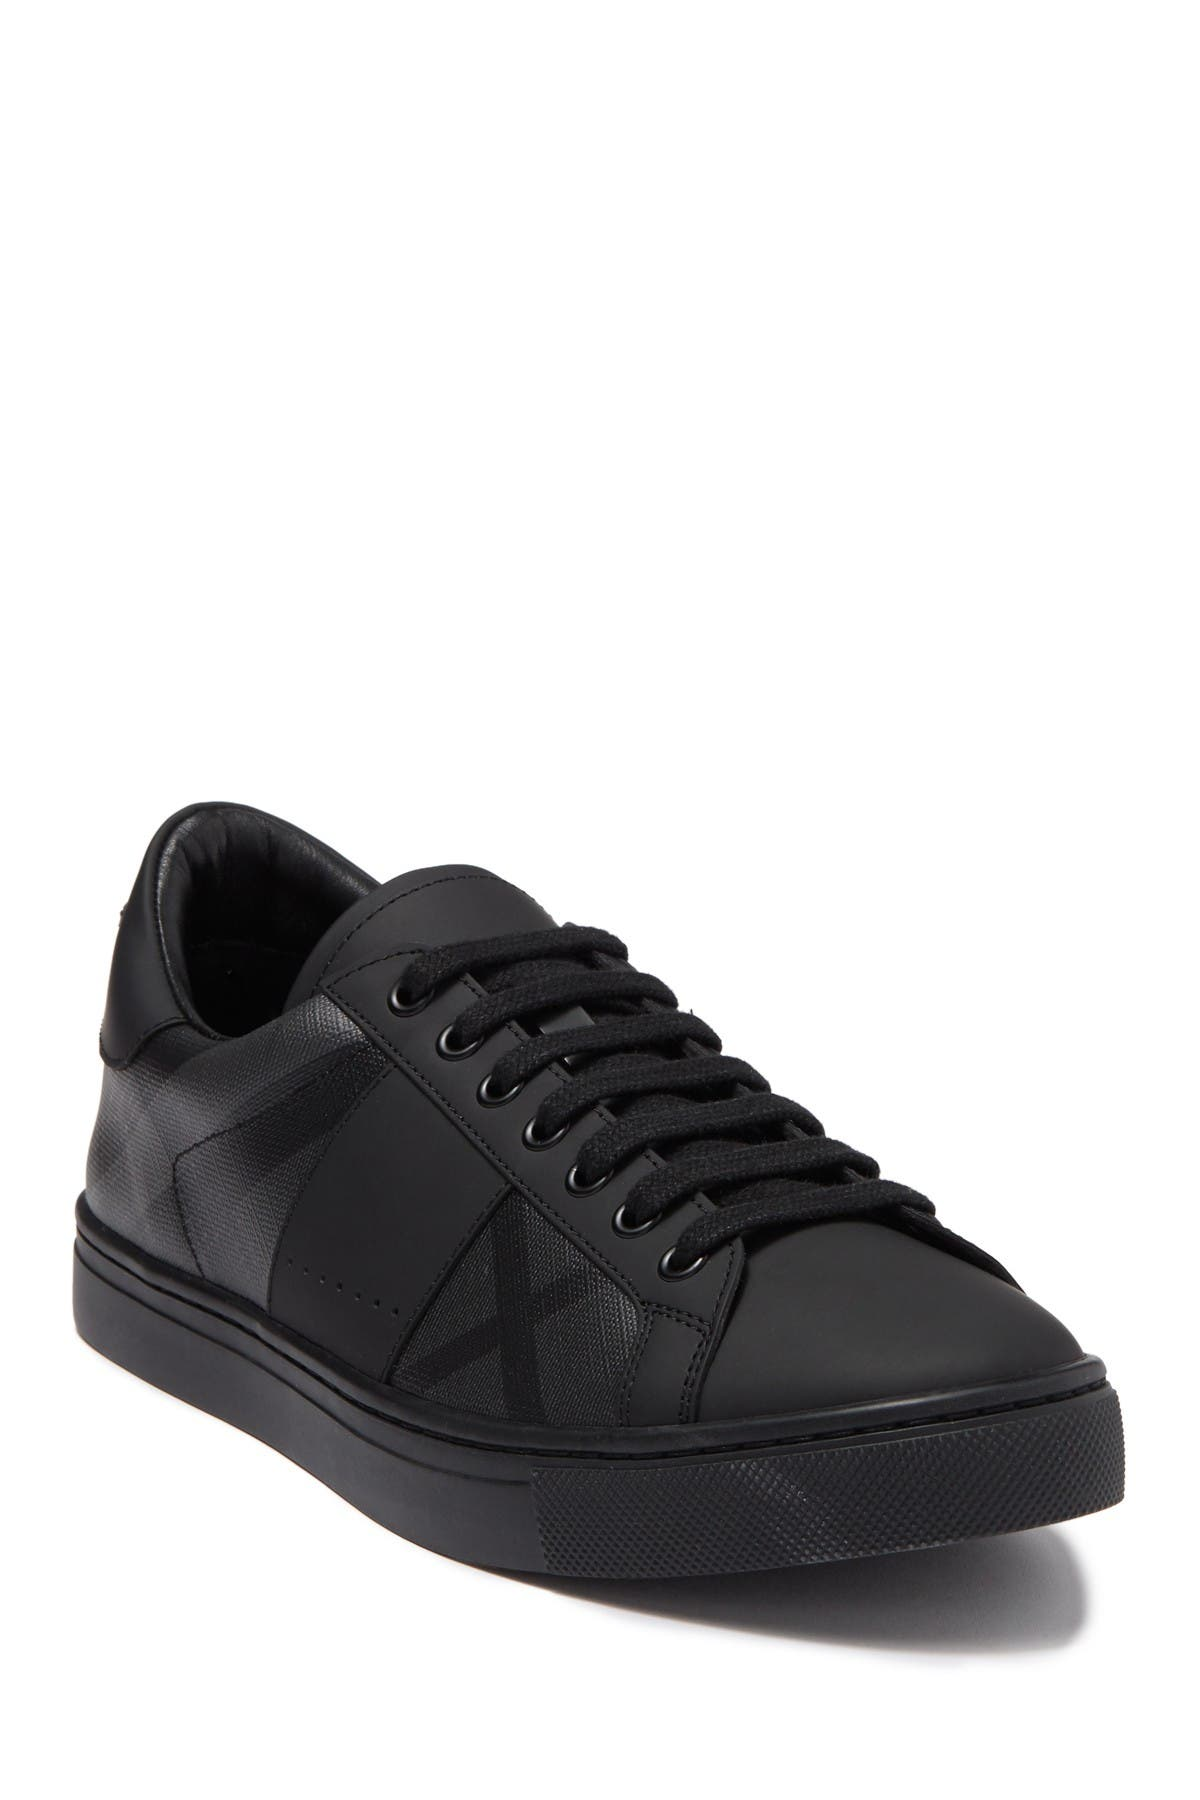 Burberry | Ritson Leather Sneaker